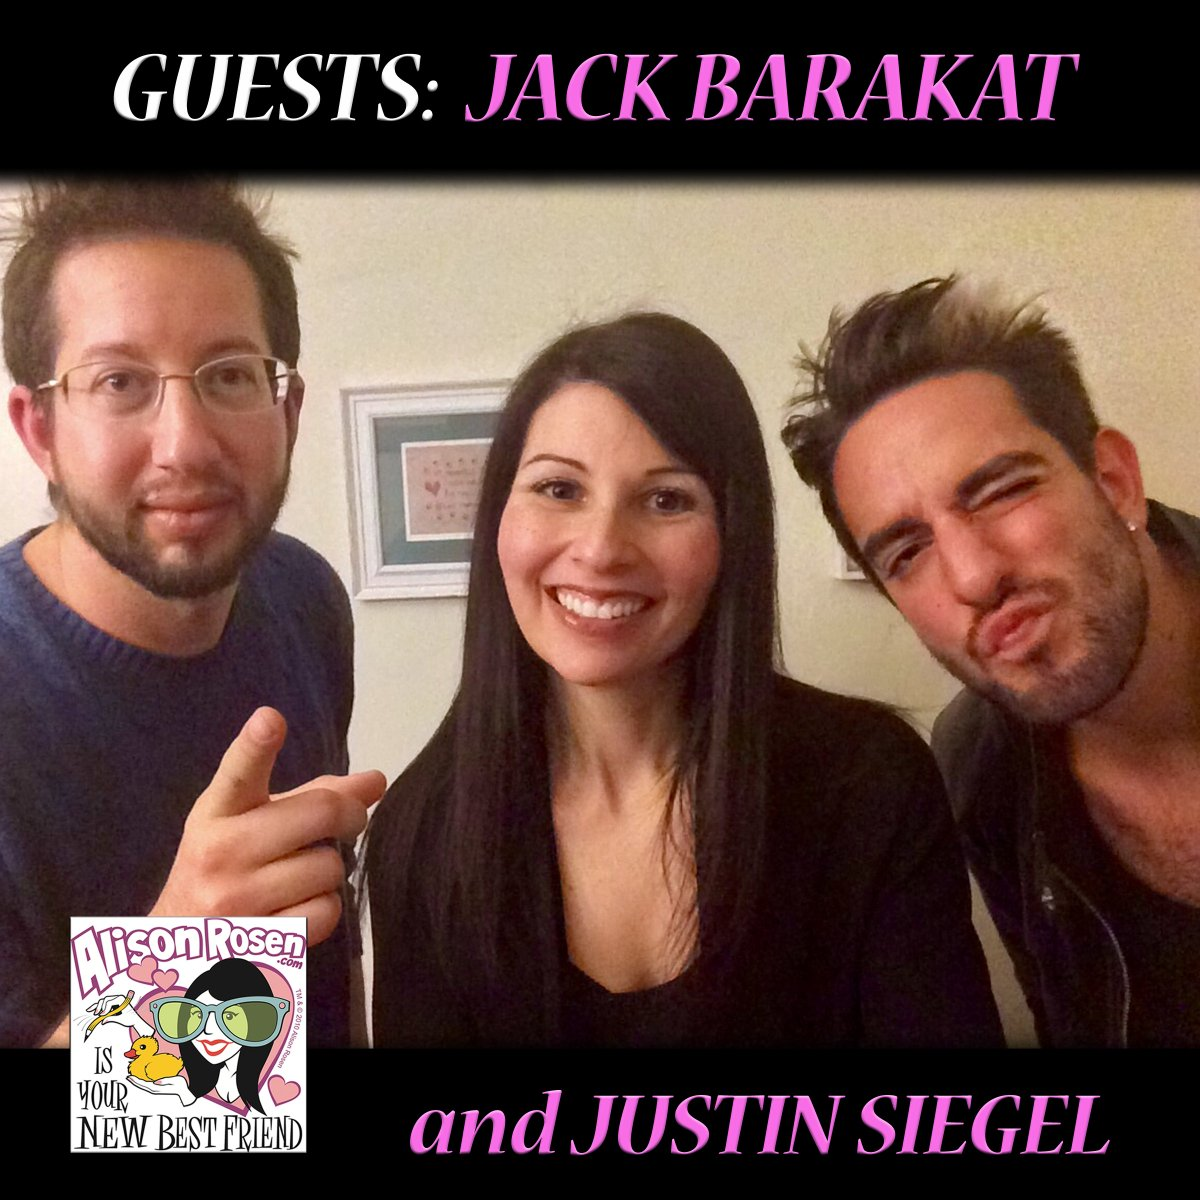 Episode w @jackalltimelow and @justinsiegel is up! Listen at https://t.co/w0UGxfILBE or https://t.co/FkAp0cH3Nb https://t.co/gpQ6P9CyoM